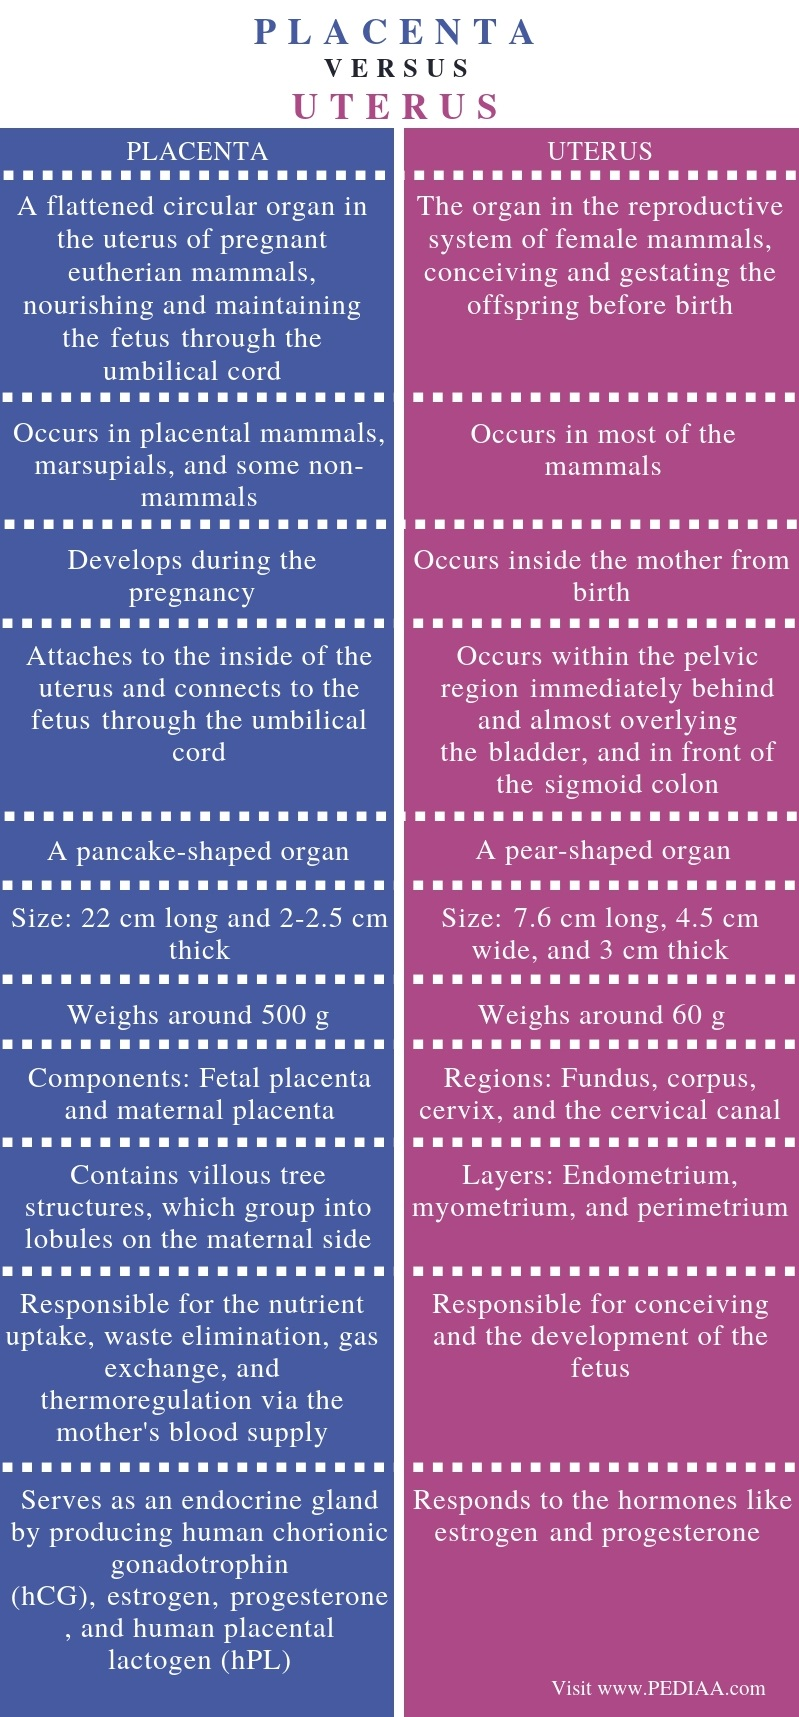 Difference Between Placenta and Uterus - Comparison Summary